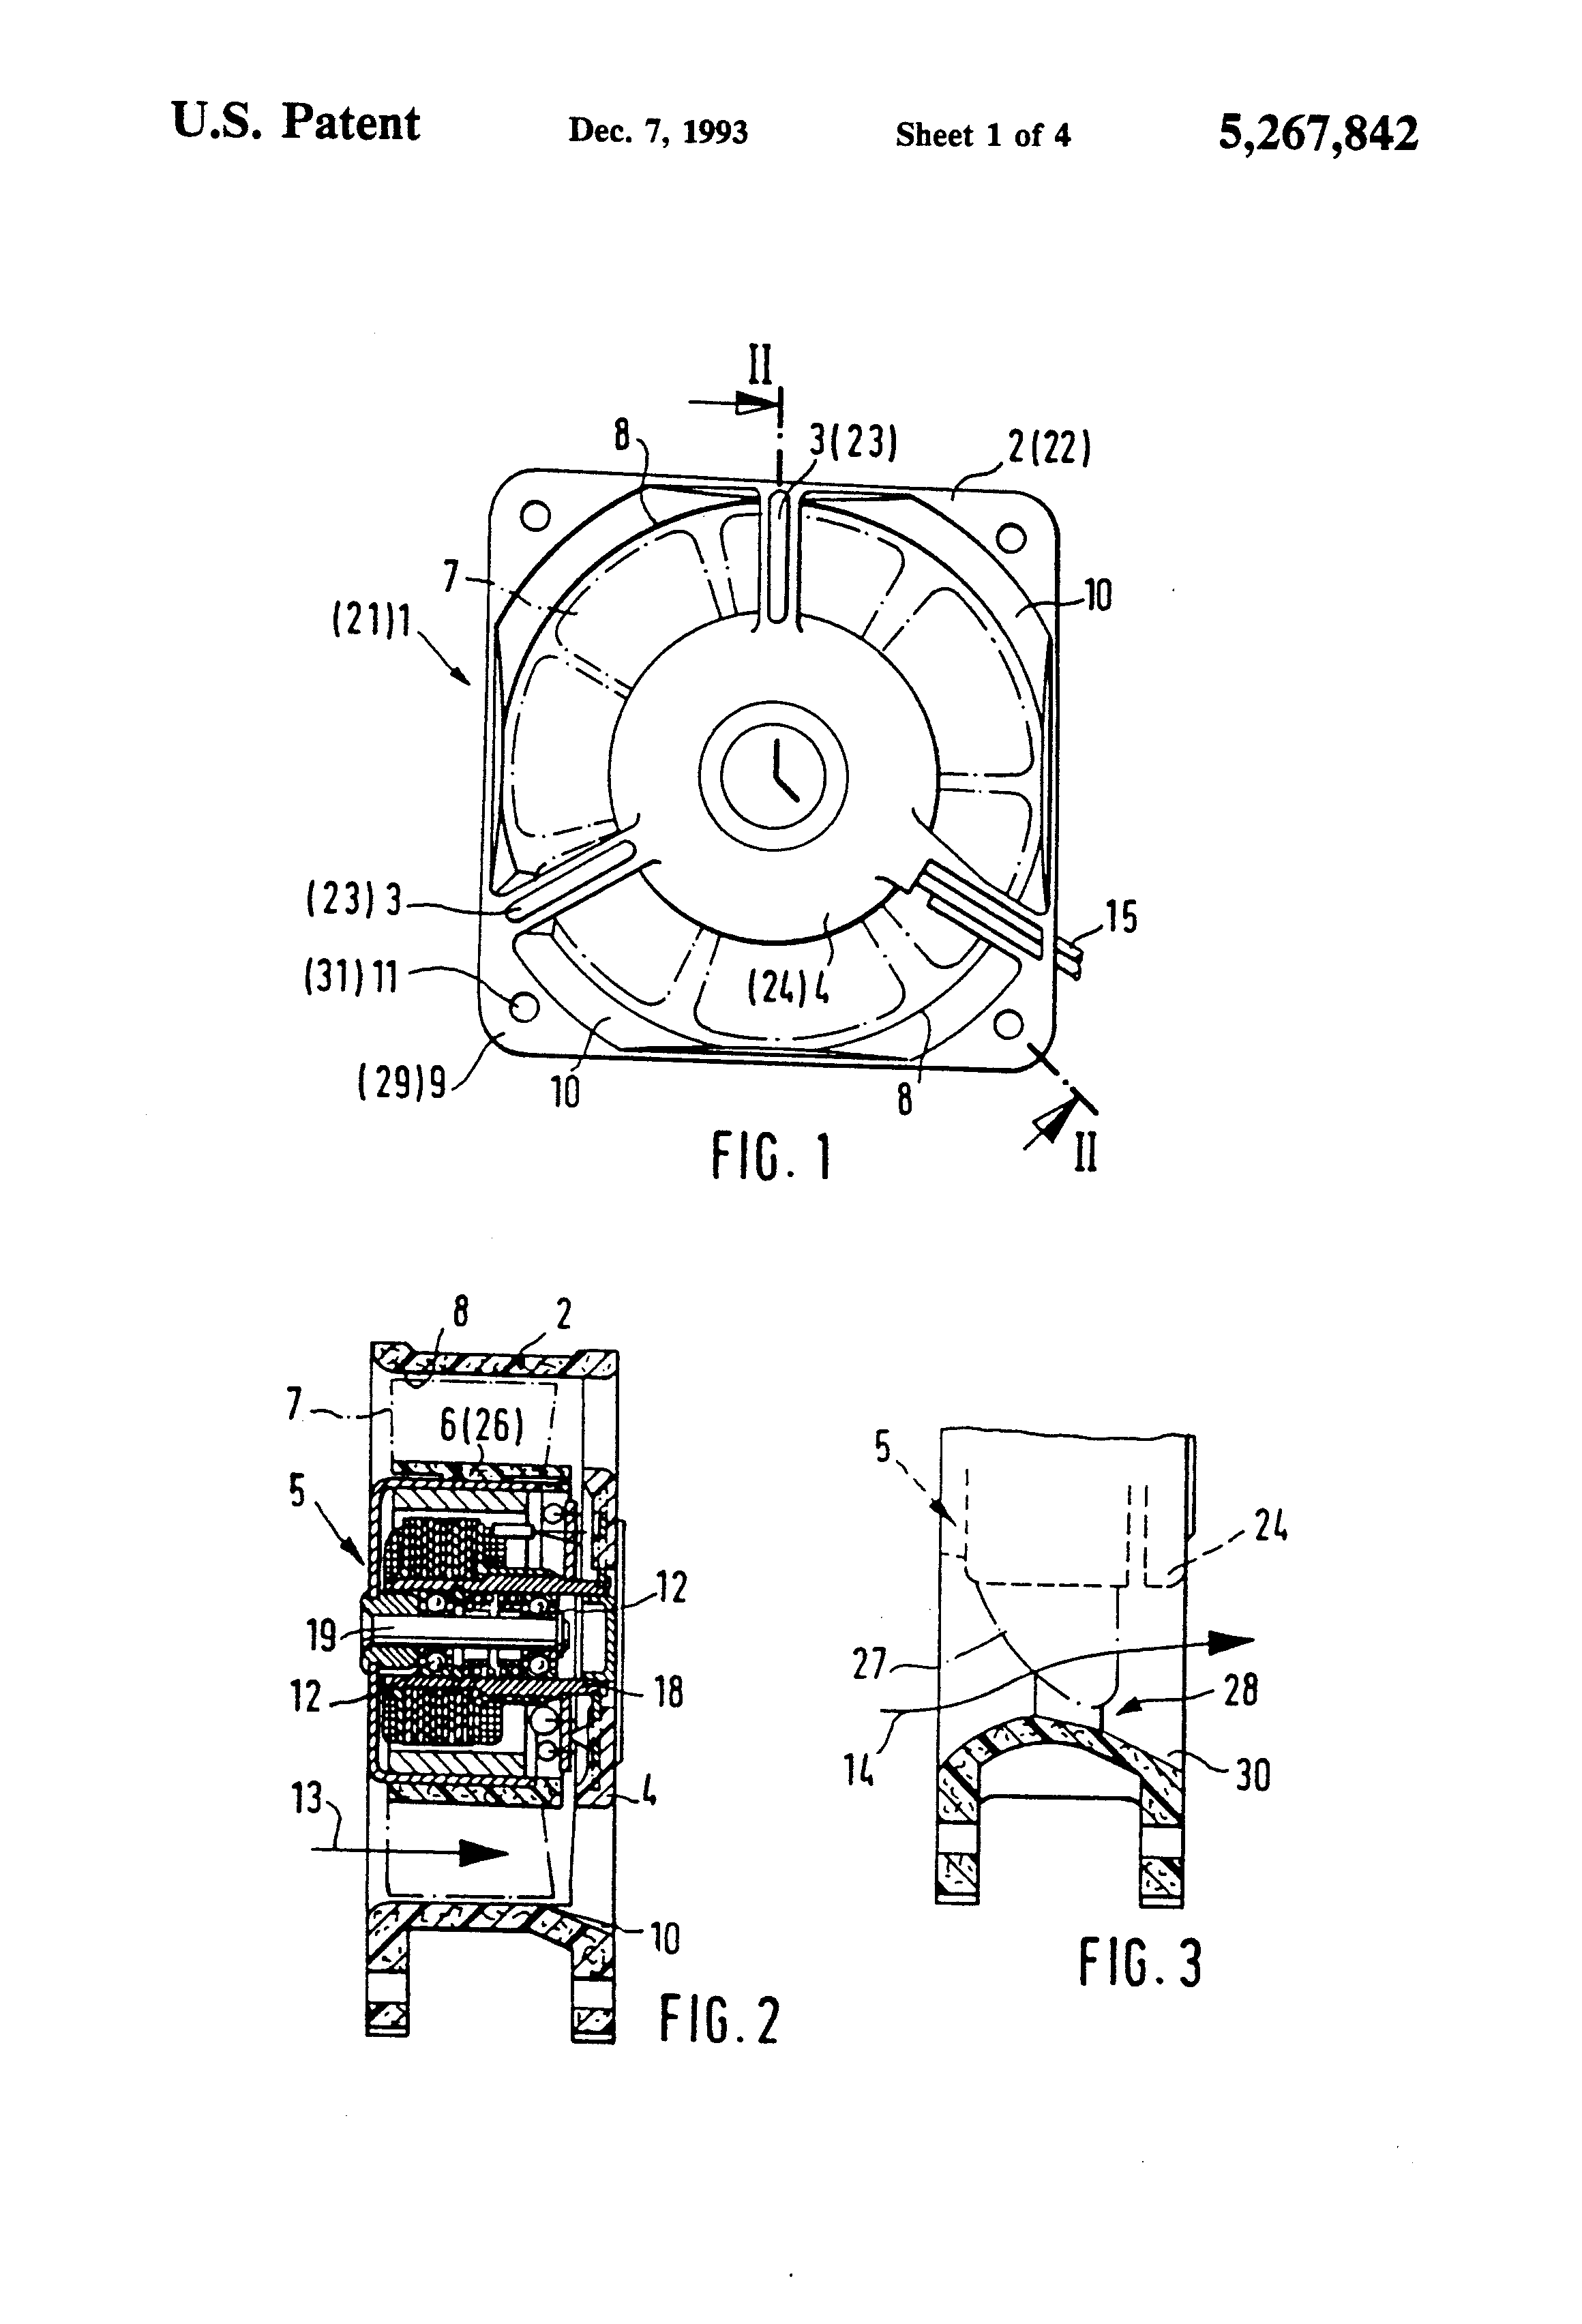 Direct Current Fan : Patent us miniaturized direct current fan